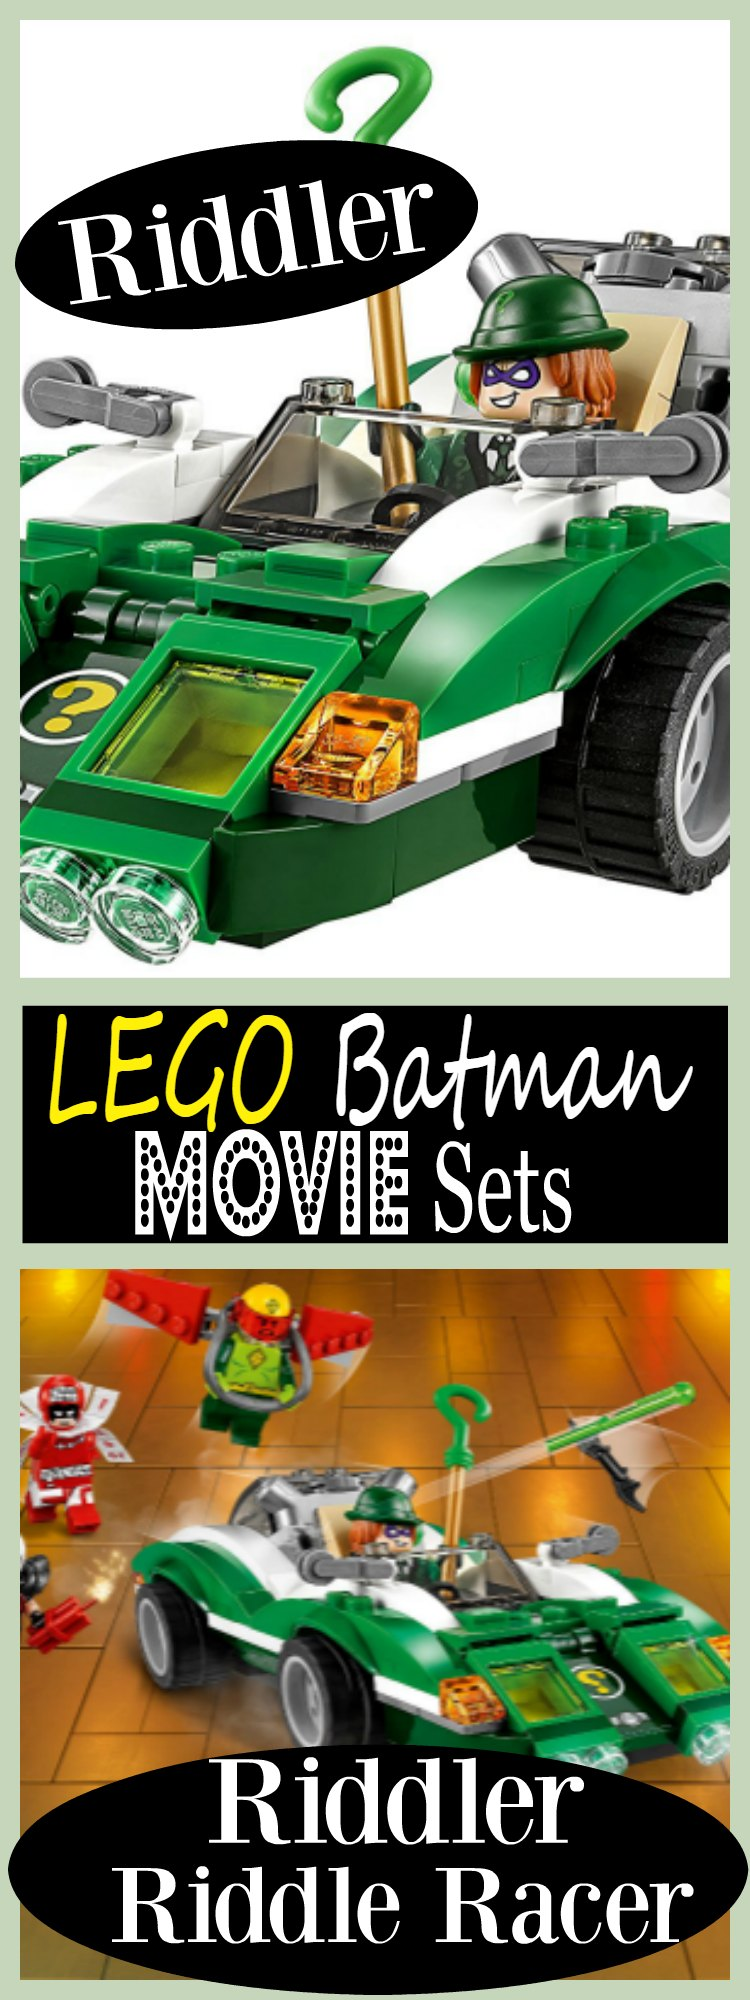 Lego Batman Movie Sets Riddler Riddle Racer Car